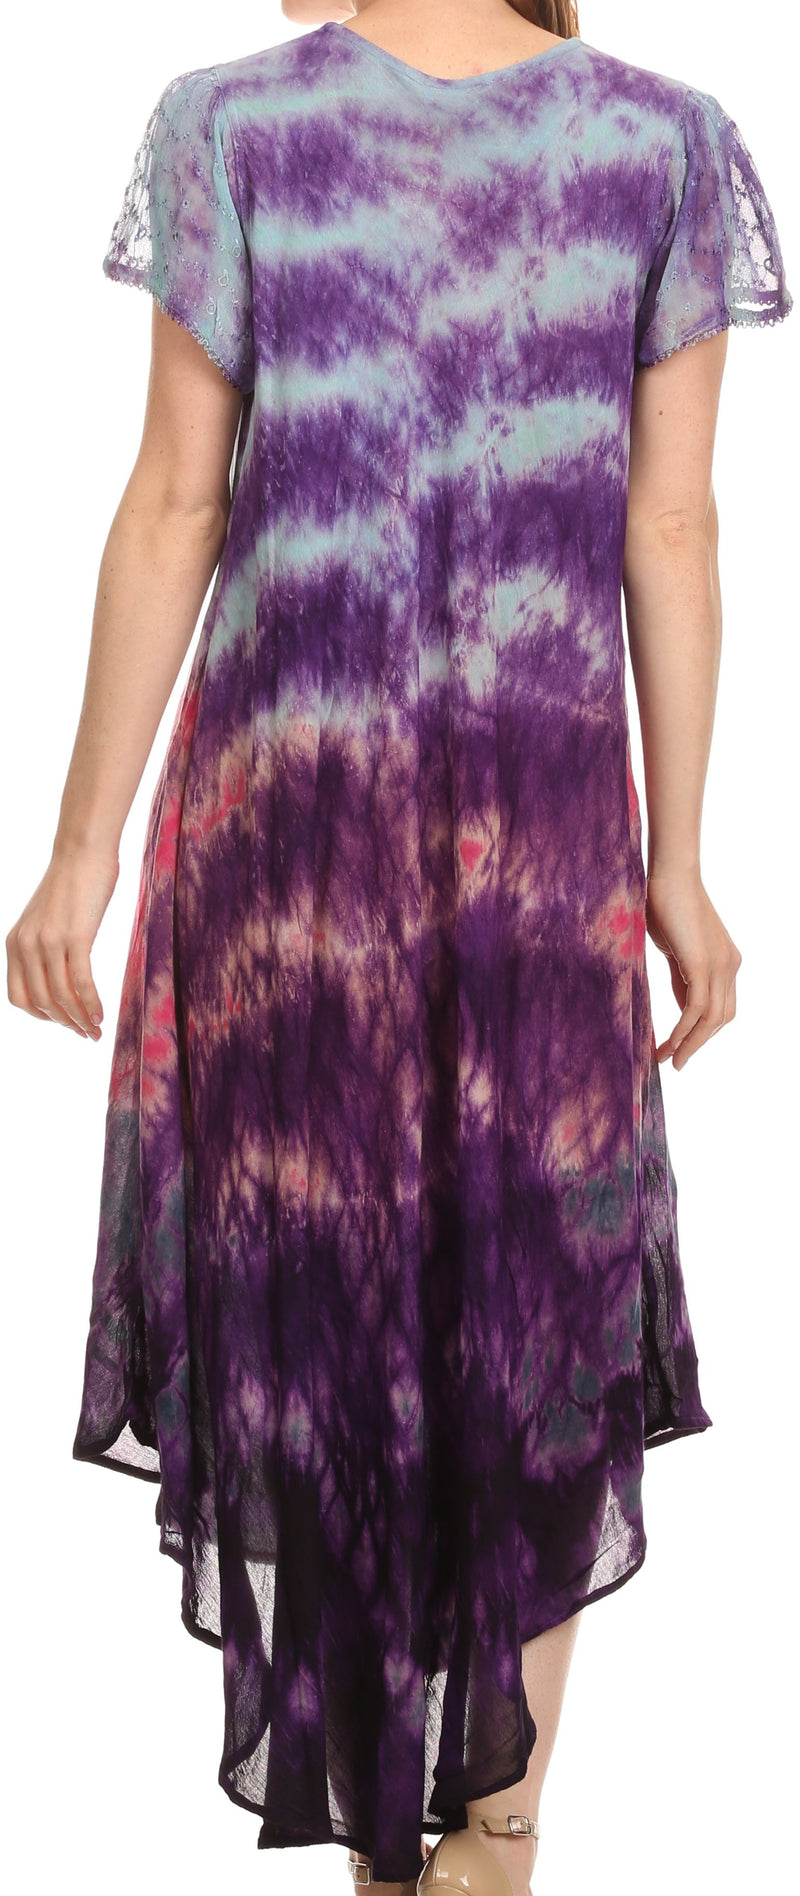 Sakkas Kaylaye Long Tie Dye Ombre Embroidered Cap Sleeve Caftan Dress / Cover Up